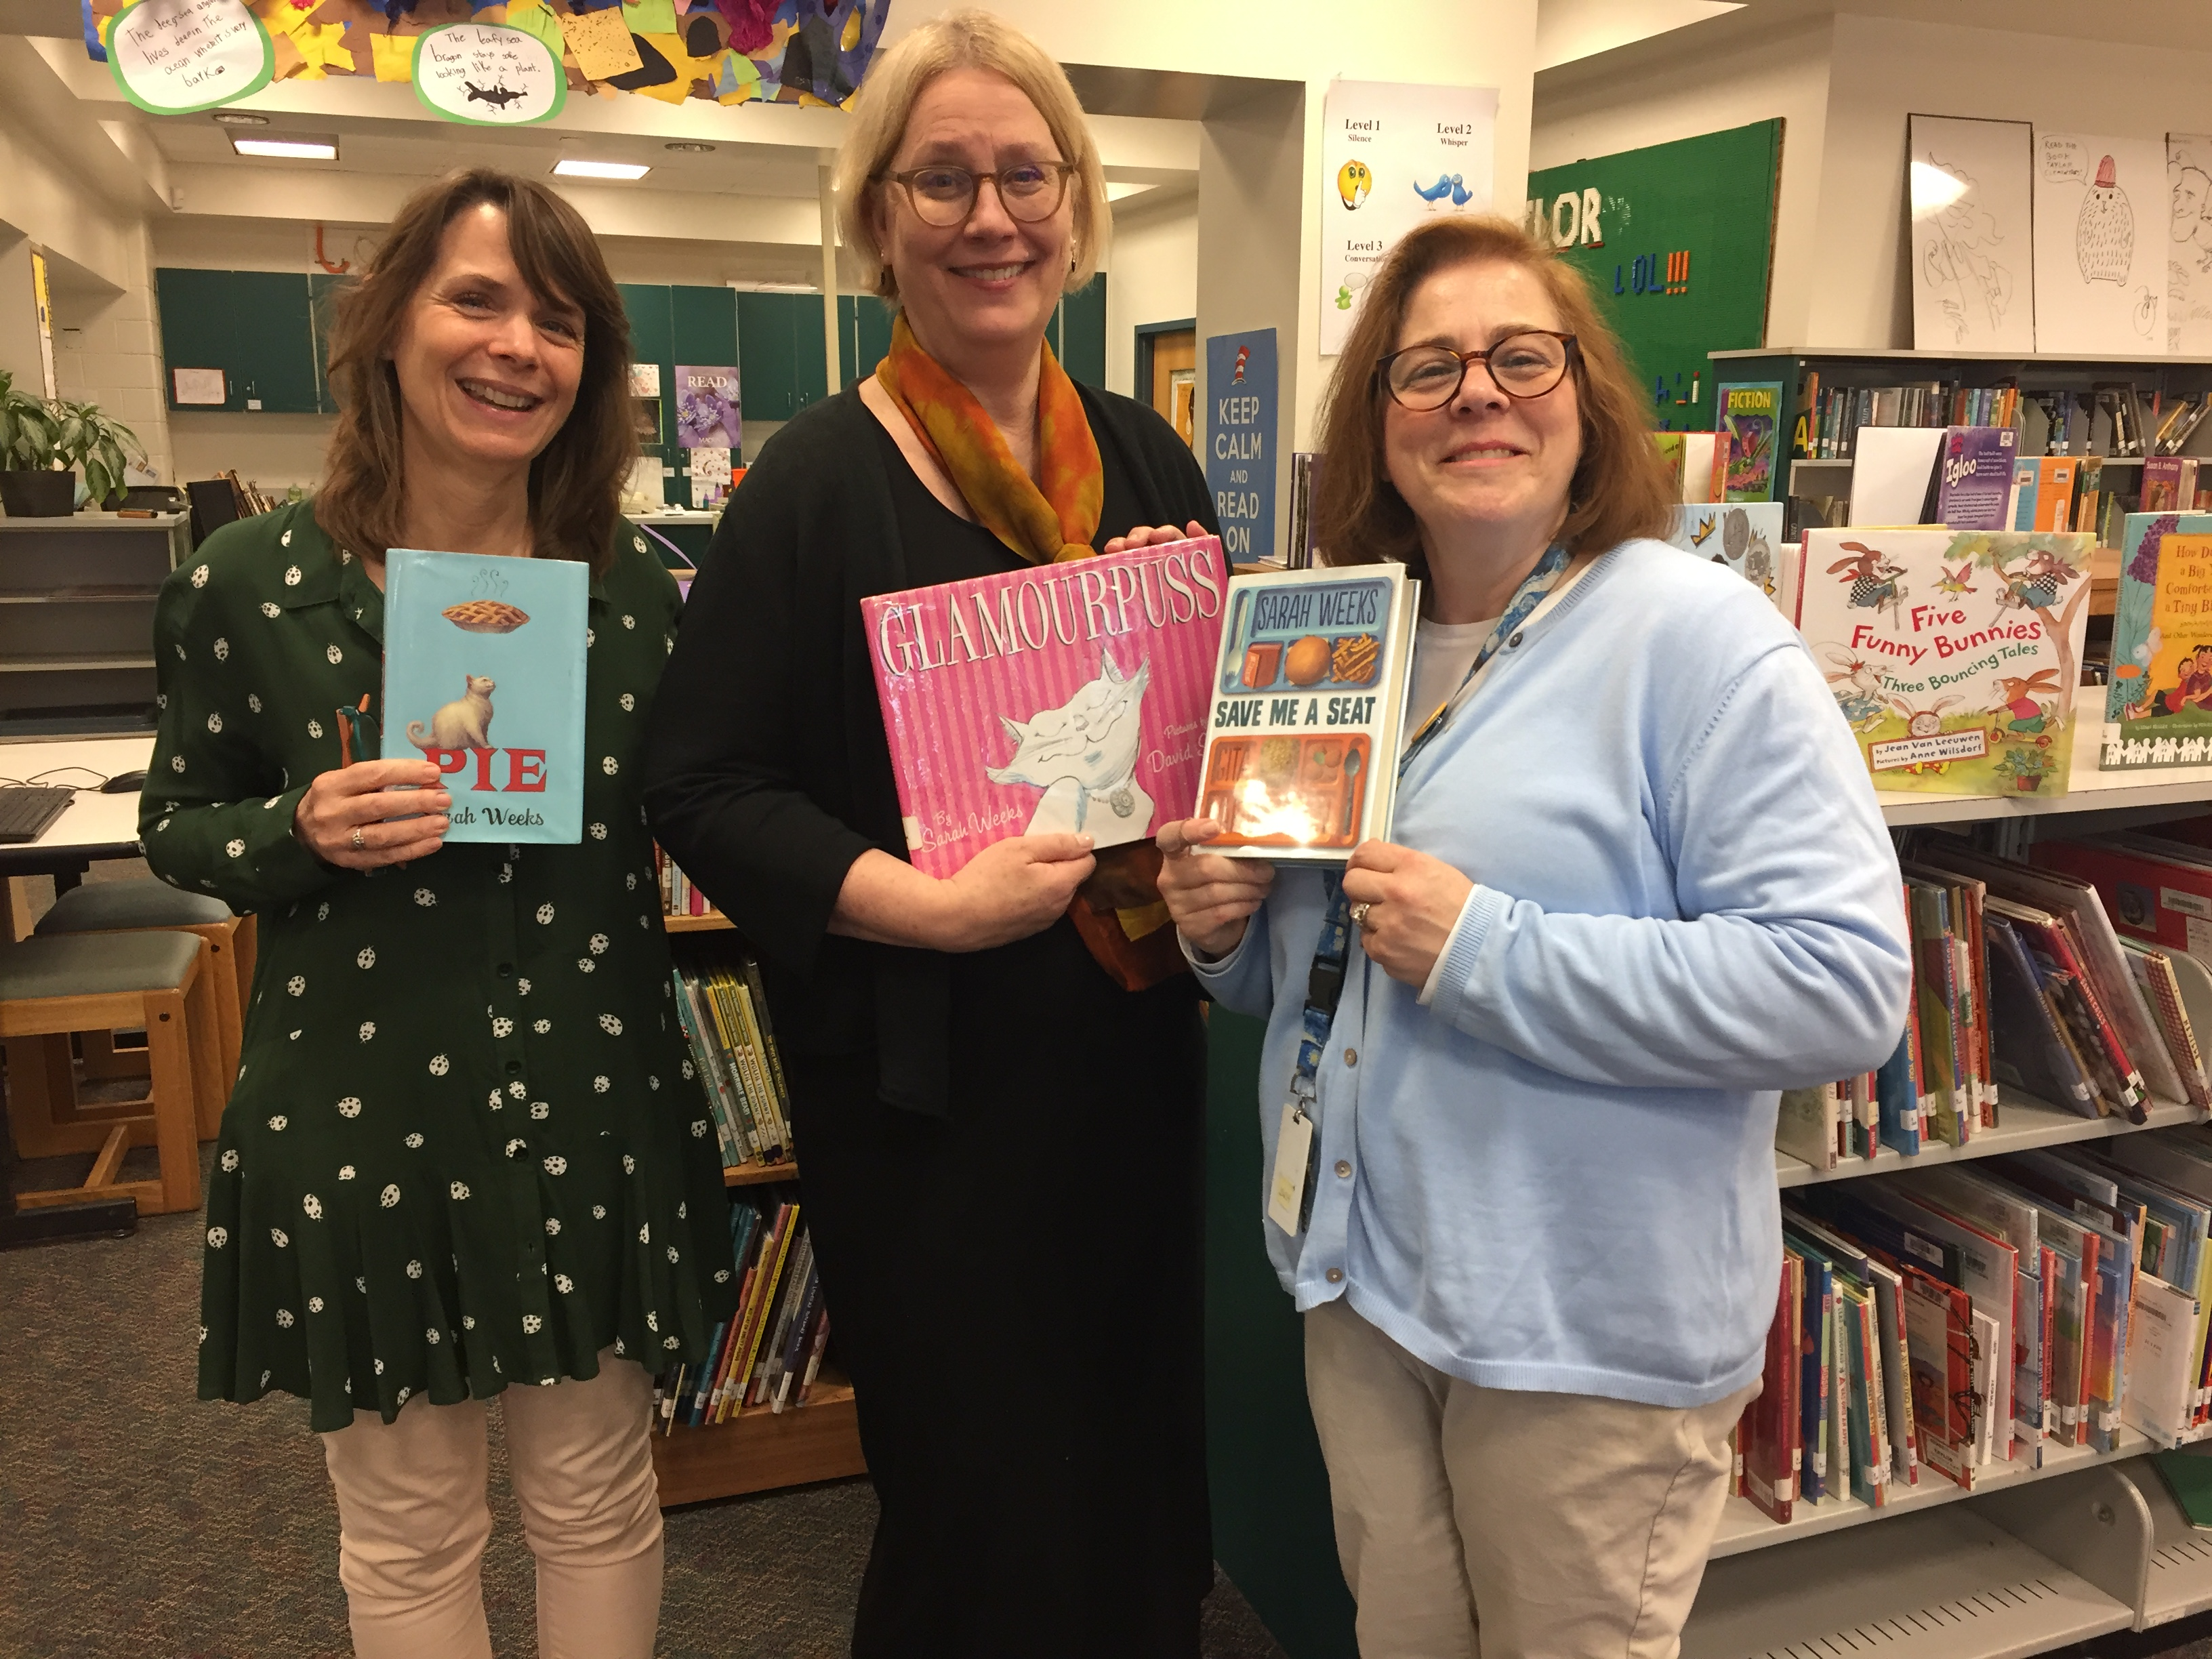 Thank You Ms. Reilly and Ms. Toole Hosting  Author Sarah Weeks